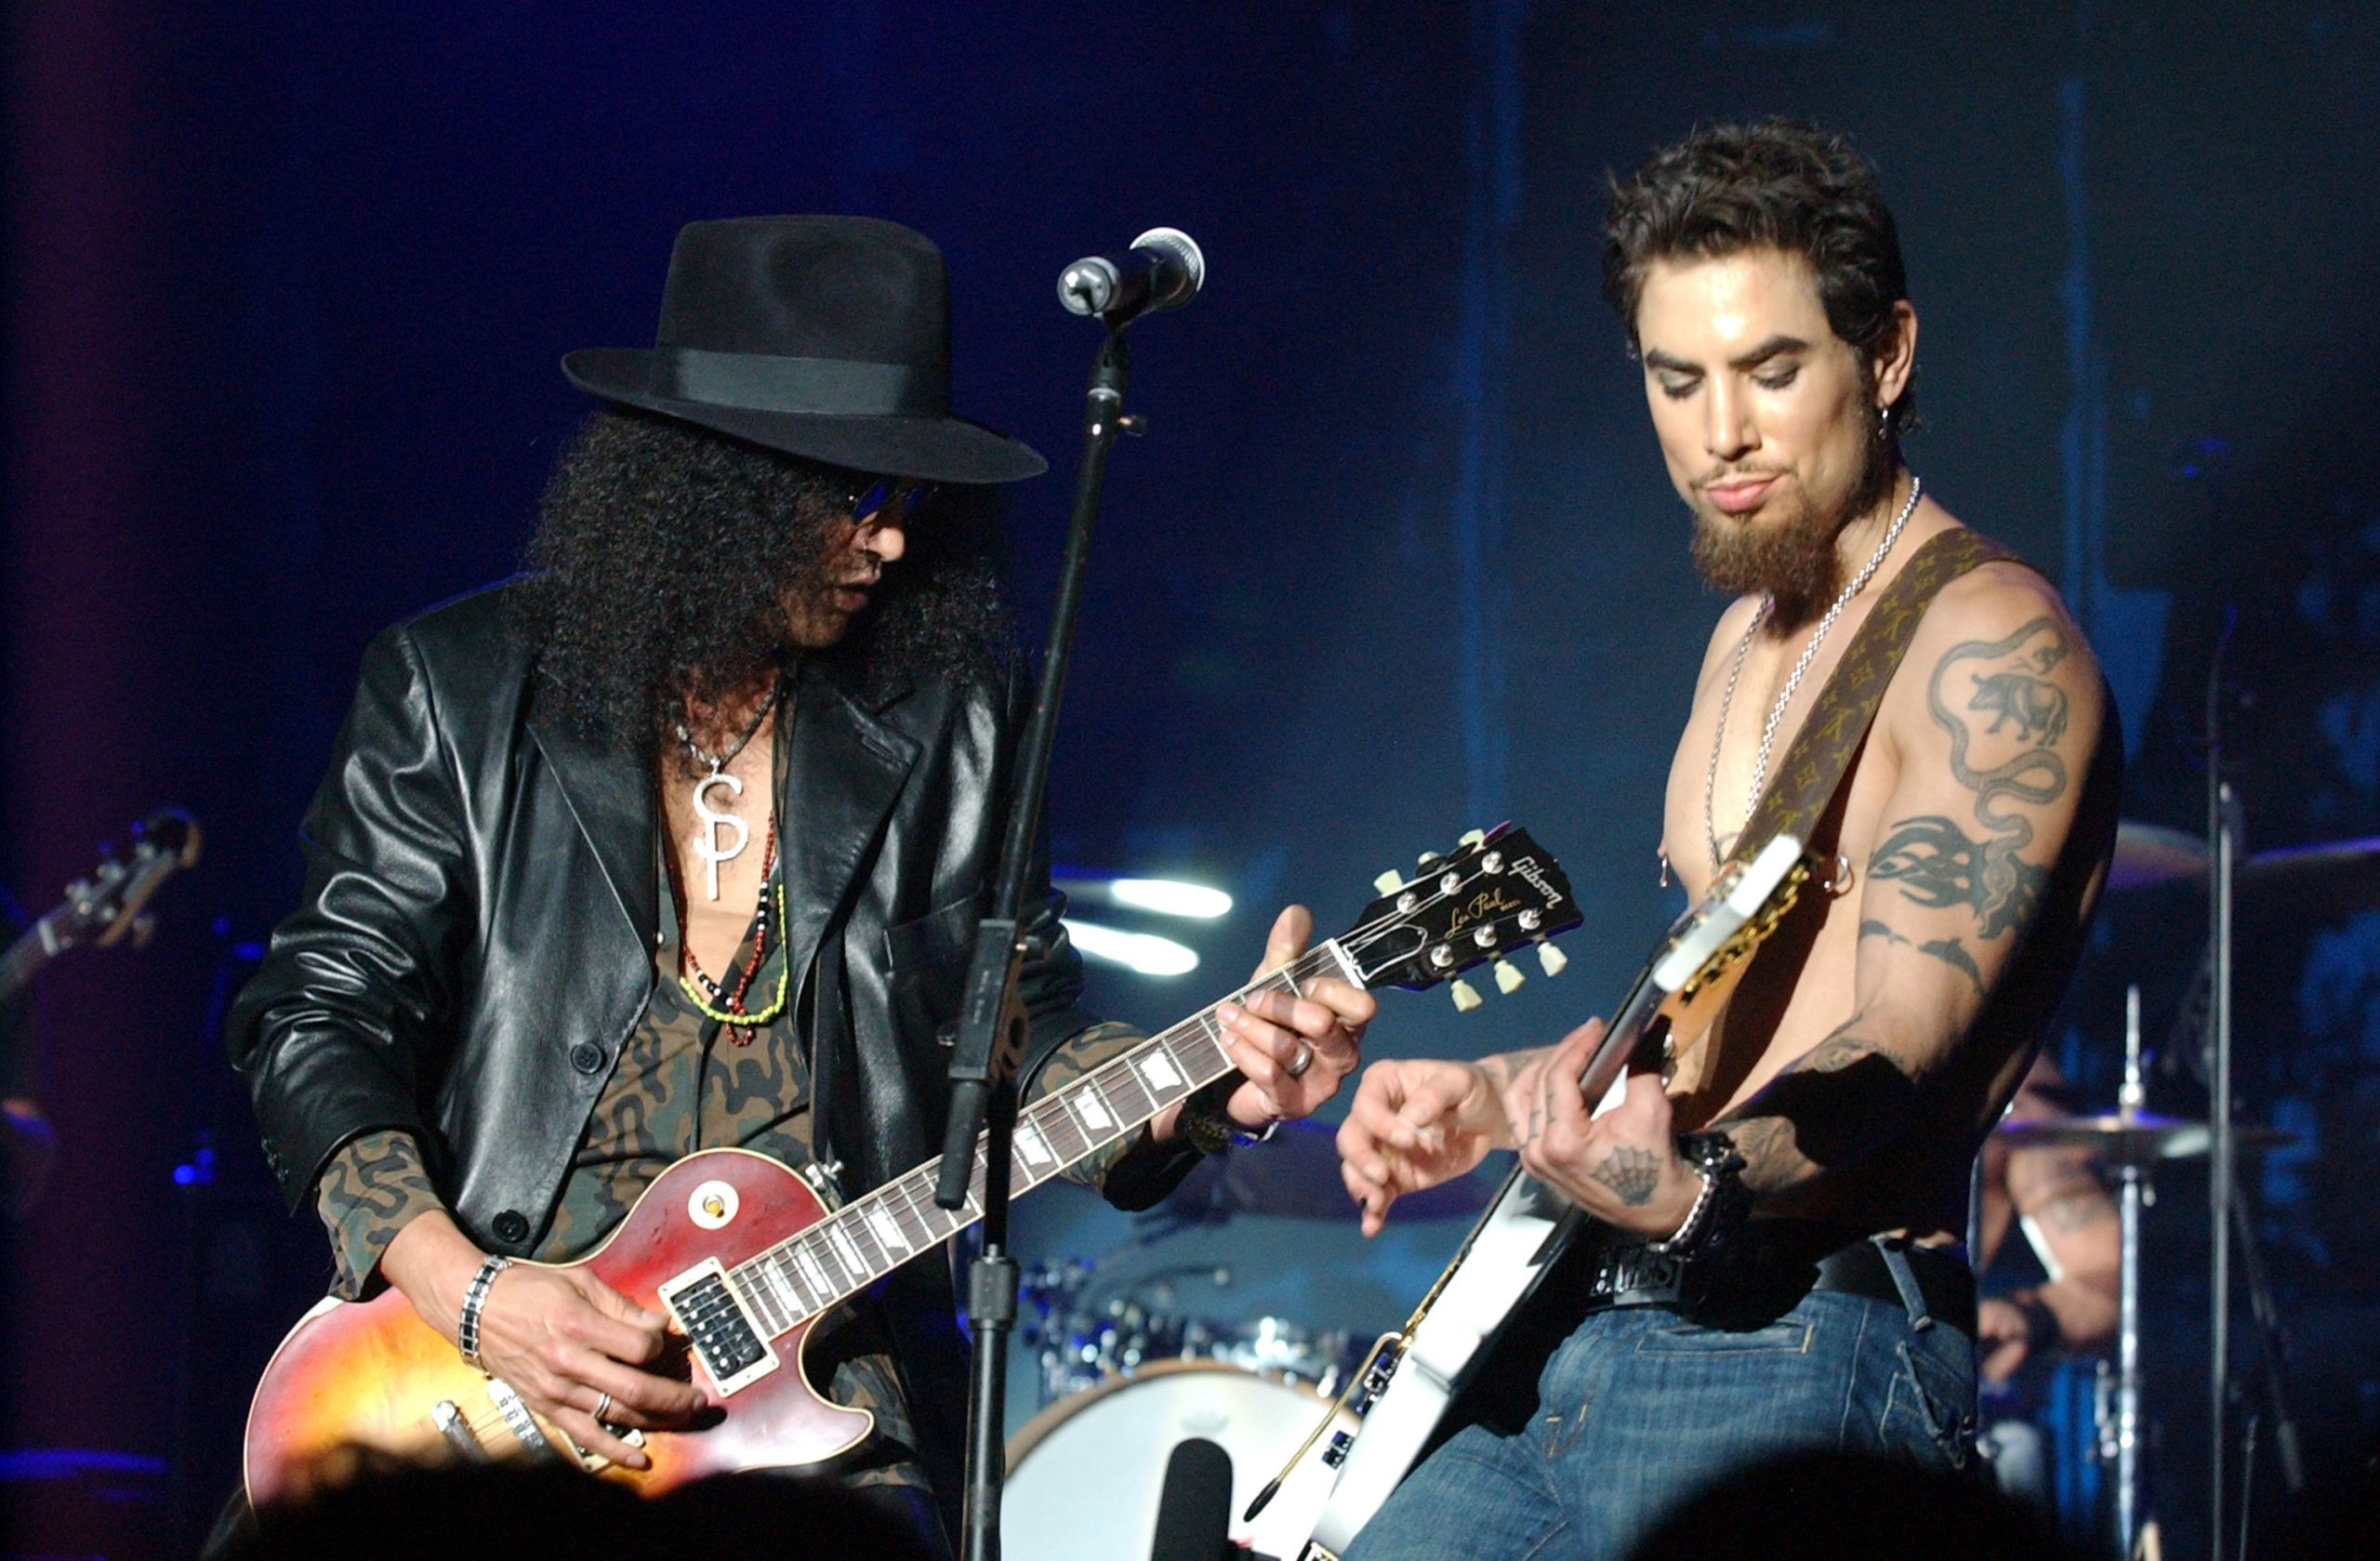 Slash and Dave Navarro during MTV Rock The Vote 10th Annual Patrick Lippert Awards at Roseland Ballroom in New York, NY, United States. (Photo by Jeff Kravitz/FilmMagic)